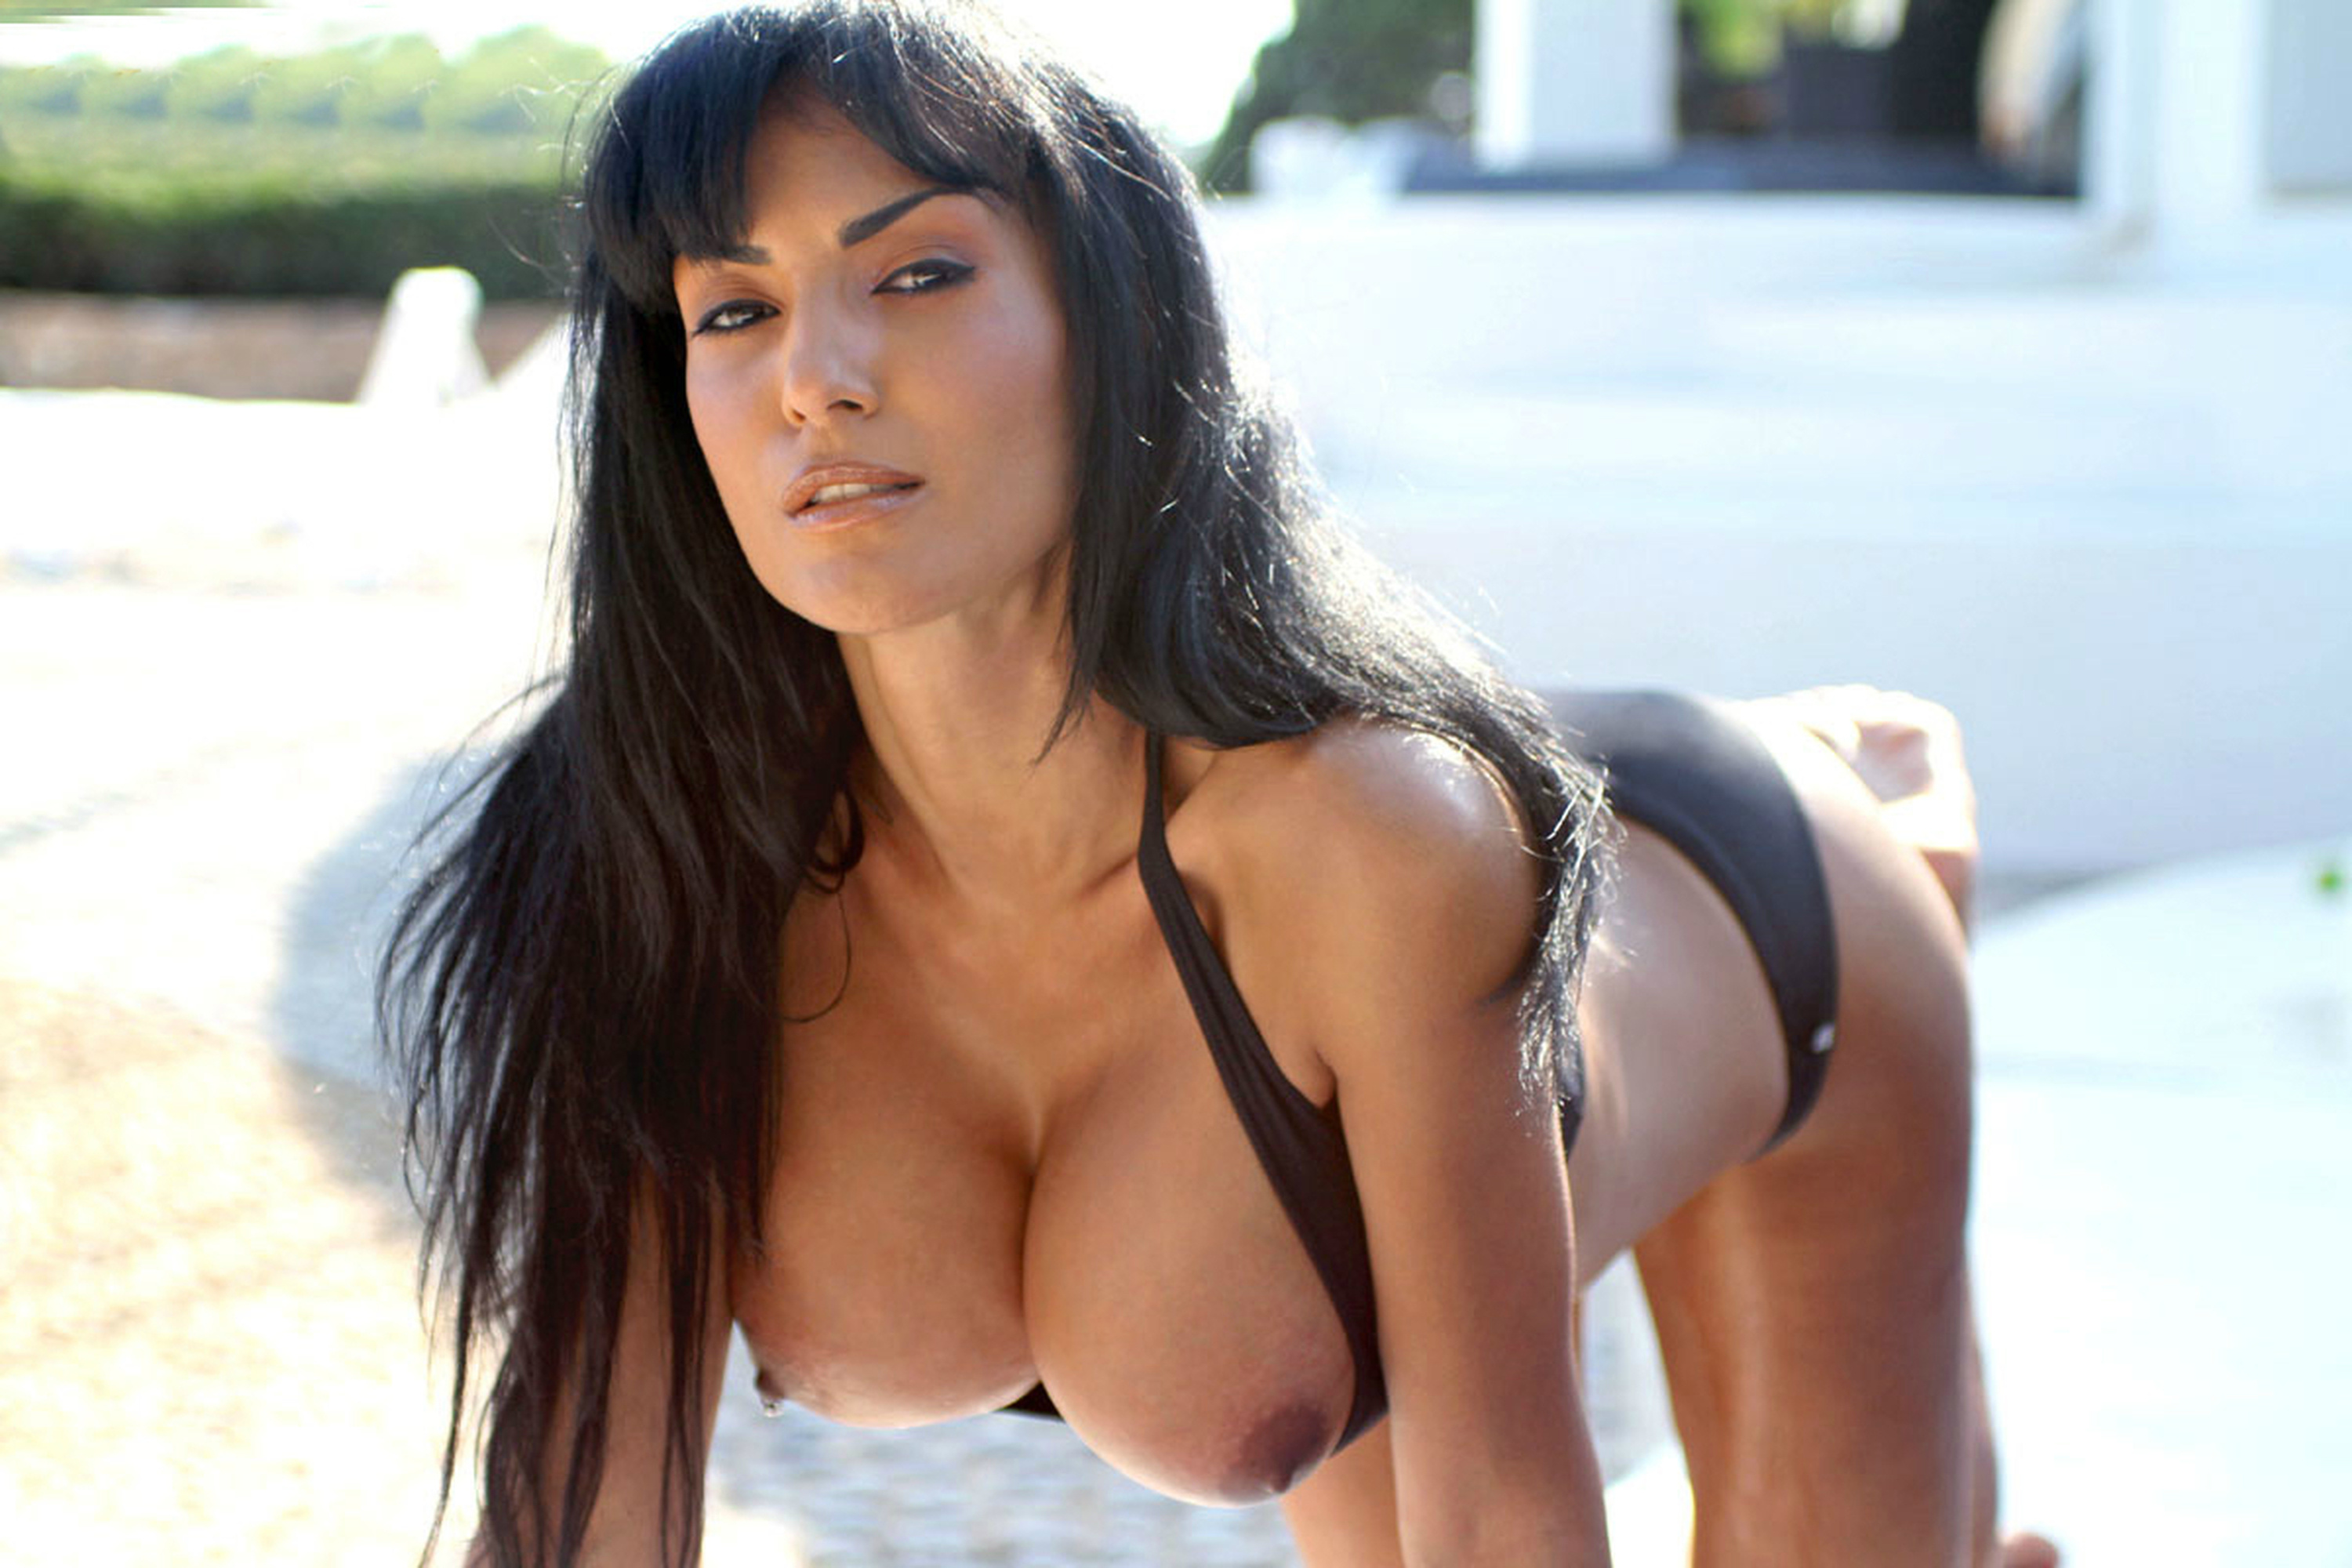 Nude funny photos of women